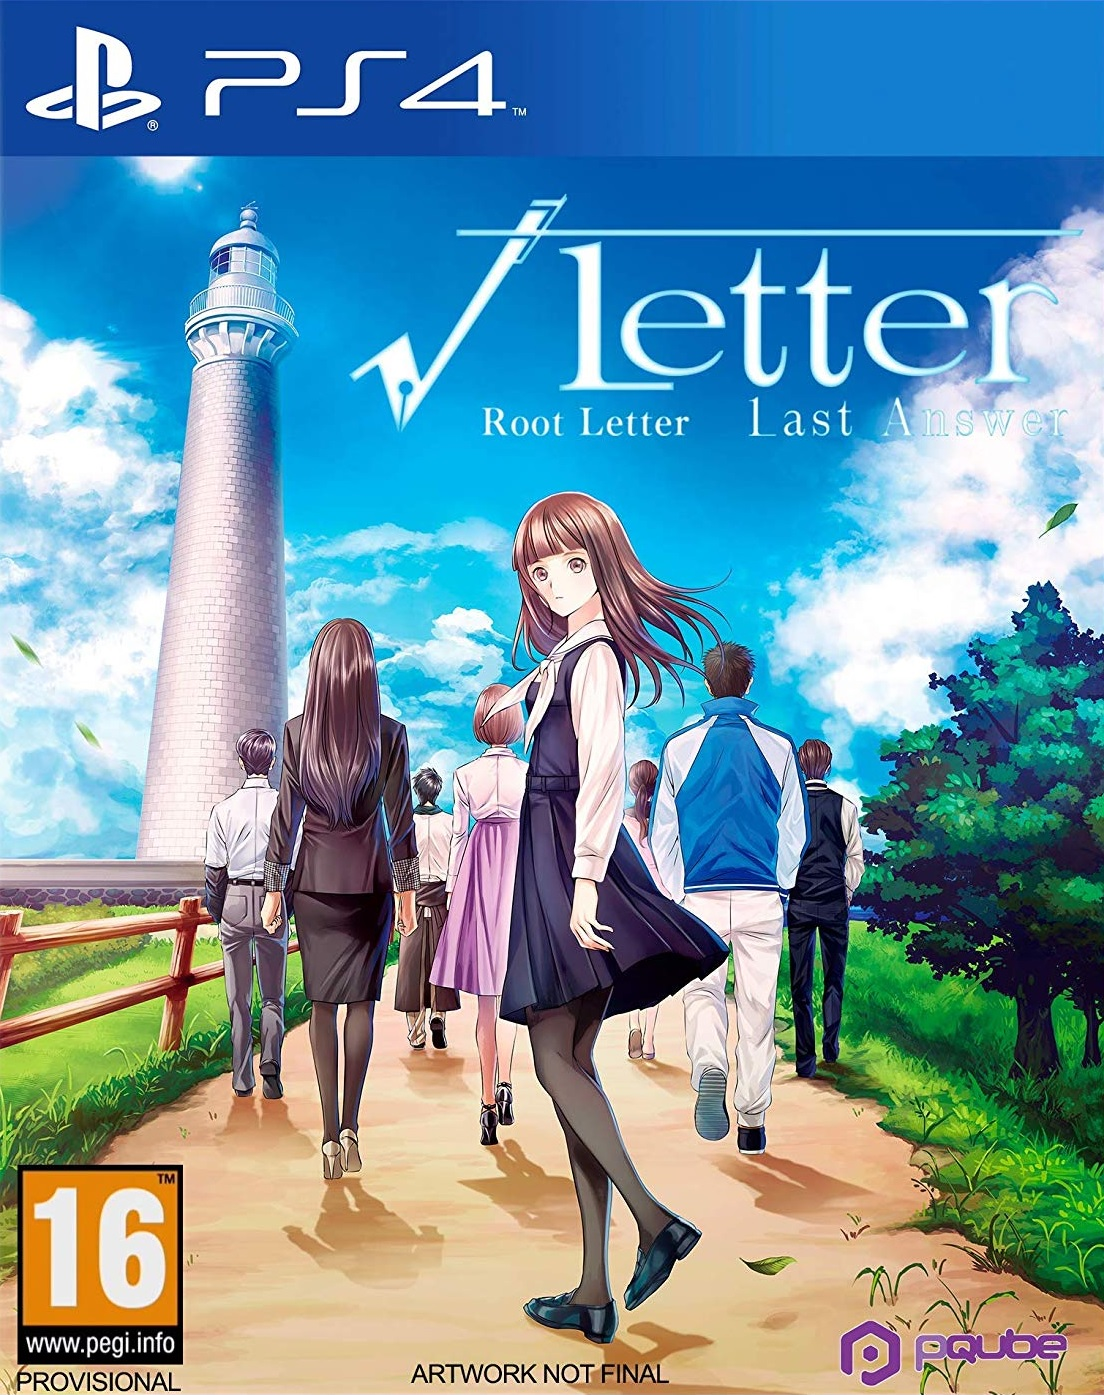 Root Letter Last Answer - Reveal - PS4